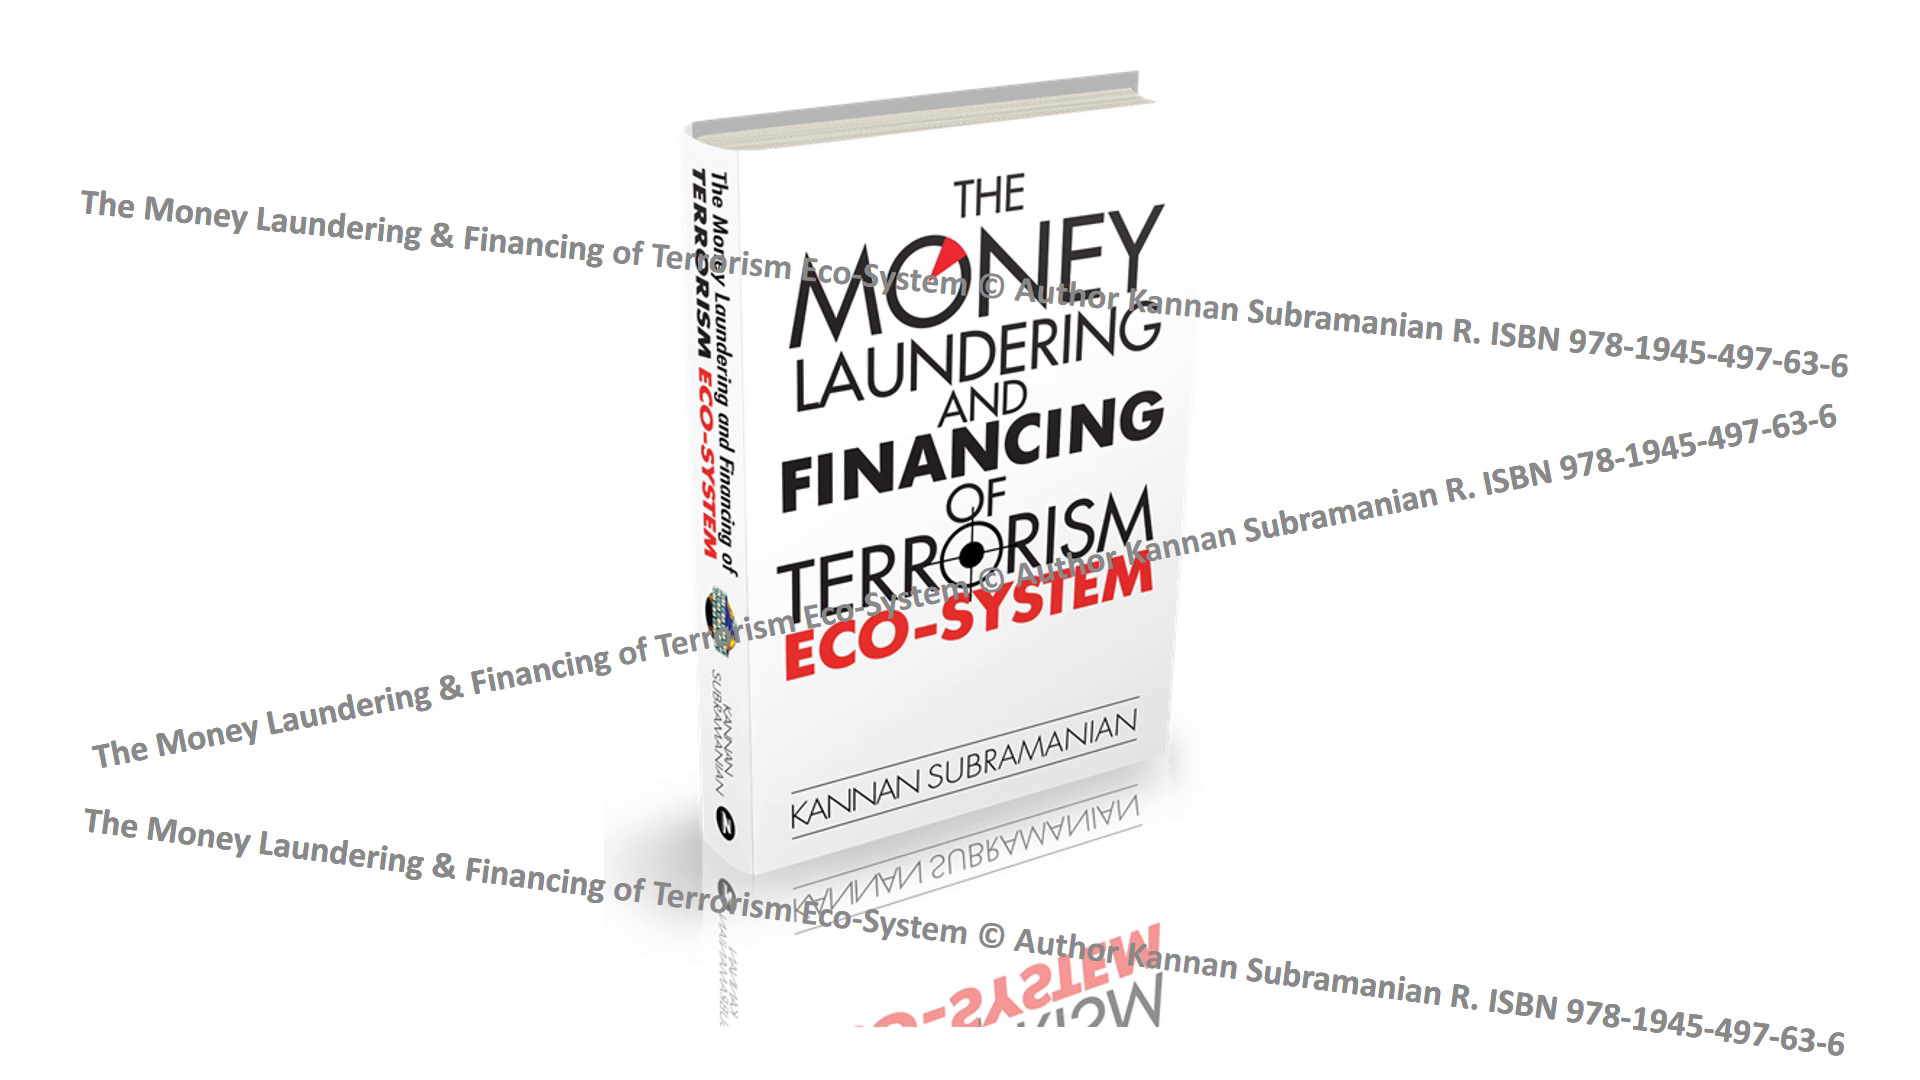 KANNAN Book Overview - The Money Laundering & Financing of Terrorism